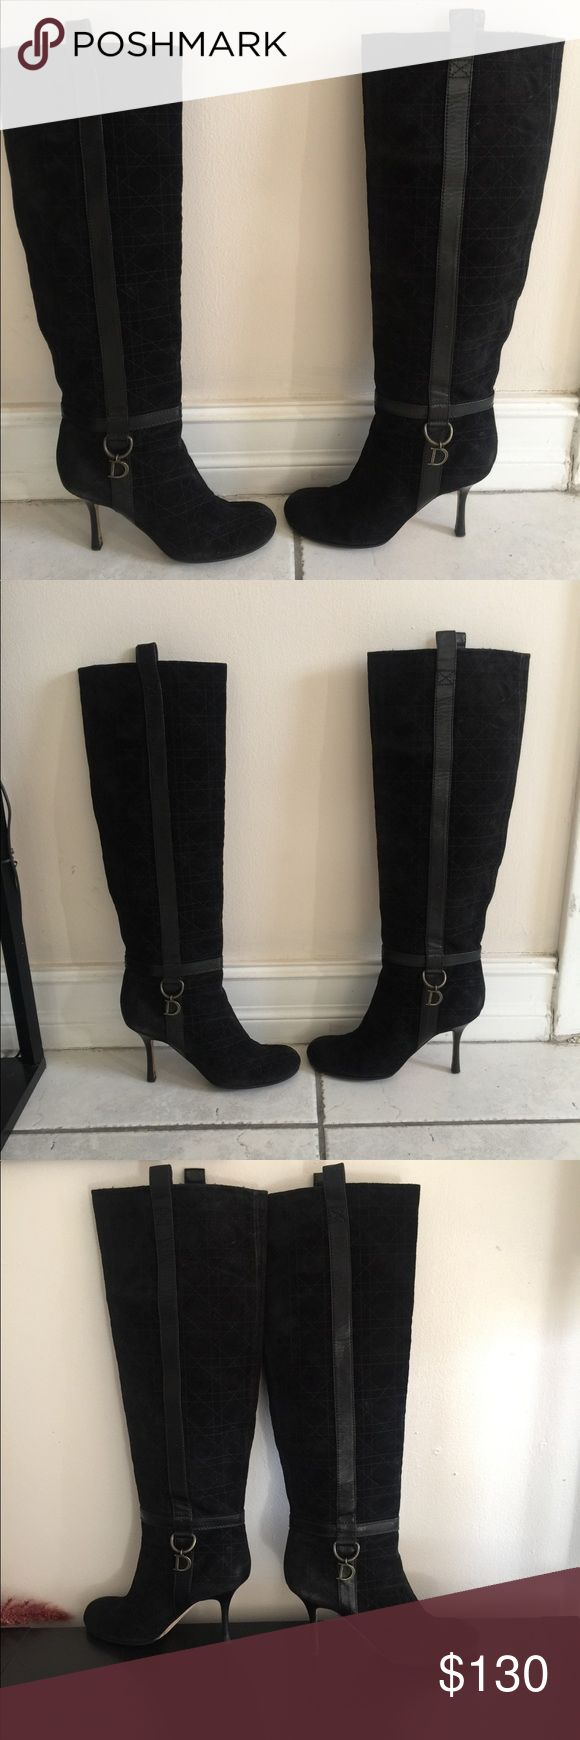 Black suede Dior boots 39 Up for sale is a pair of gorgeous black suede Dior boots in size 39, US 9. Round toe, very comfy and classy, yet sexy. Dior Shoes Over the Knee Boots